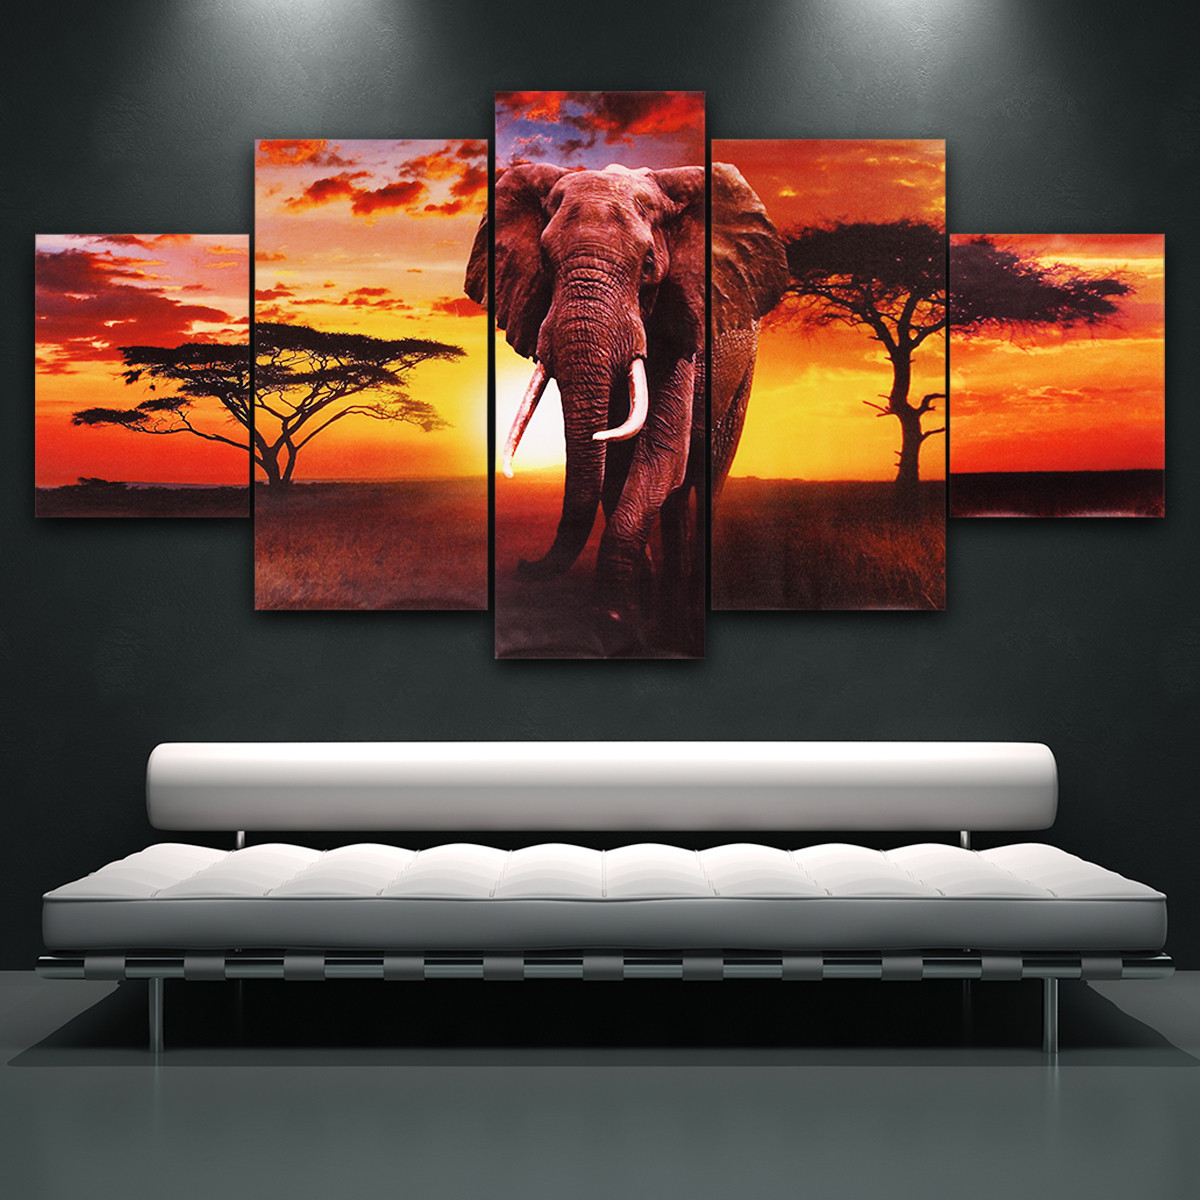 5in1 Modern Unframed Abstract Elephant Canvas Painting Picture Decorative Home Wall Decor